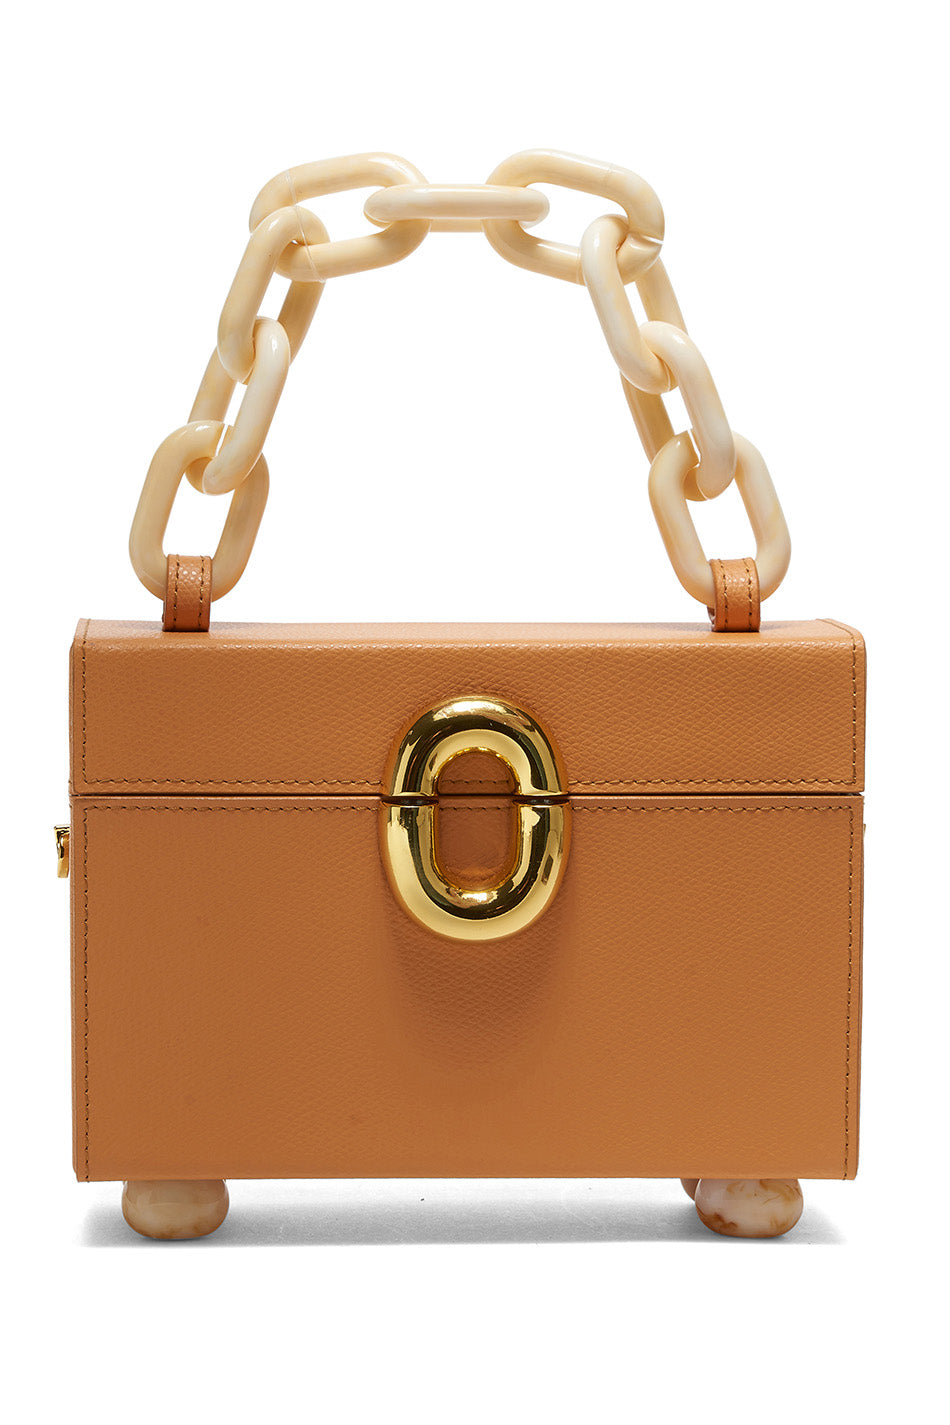 Lizzie Fortunato - cinema box bag, butterscotch